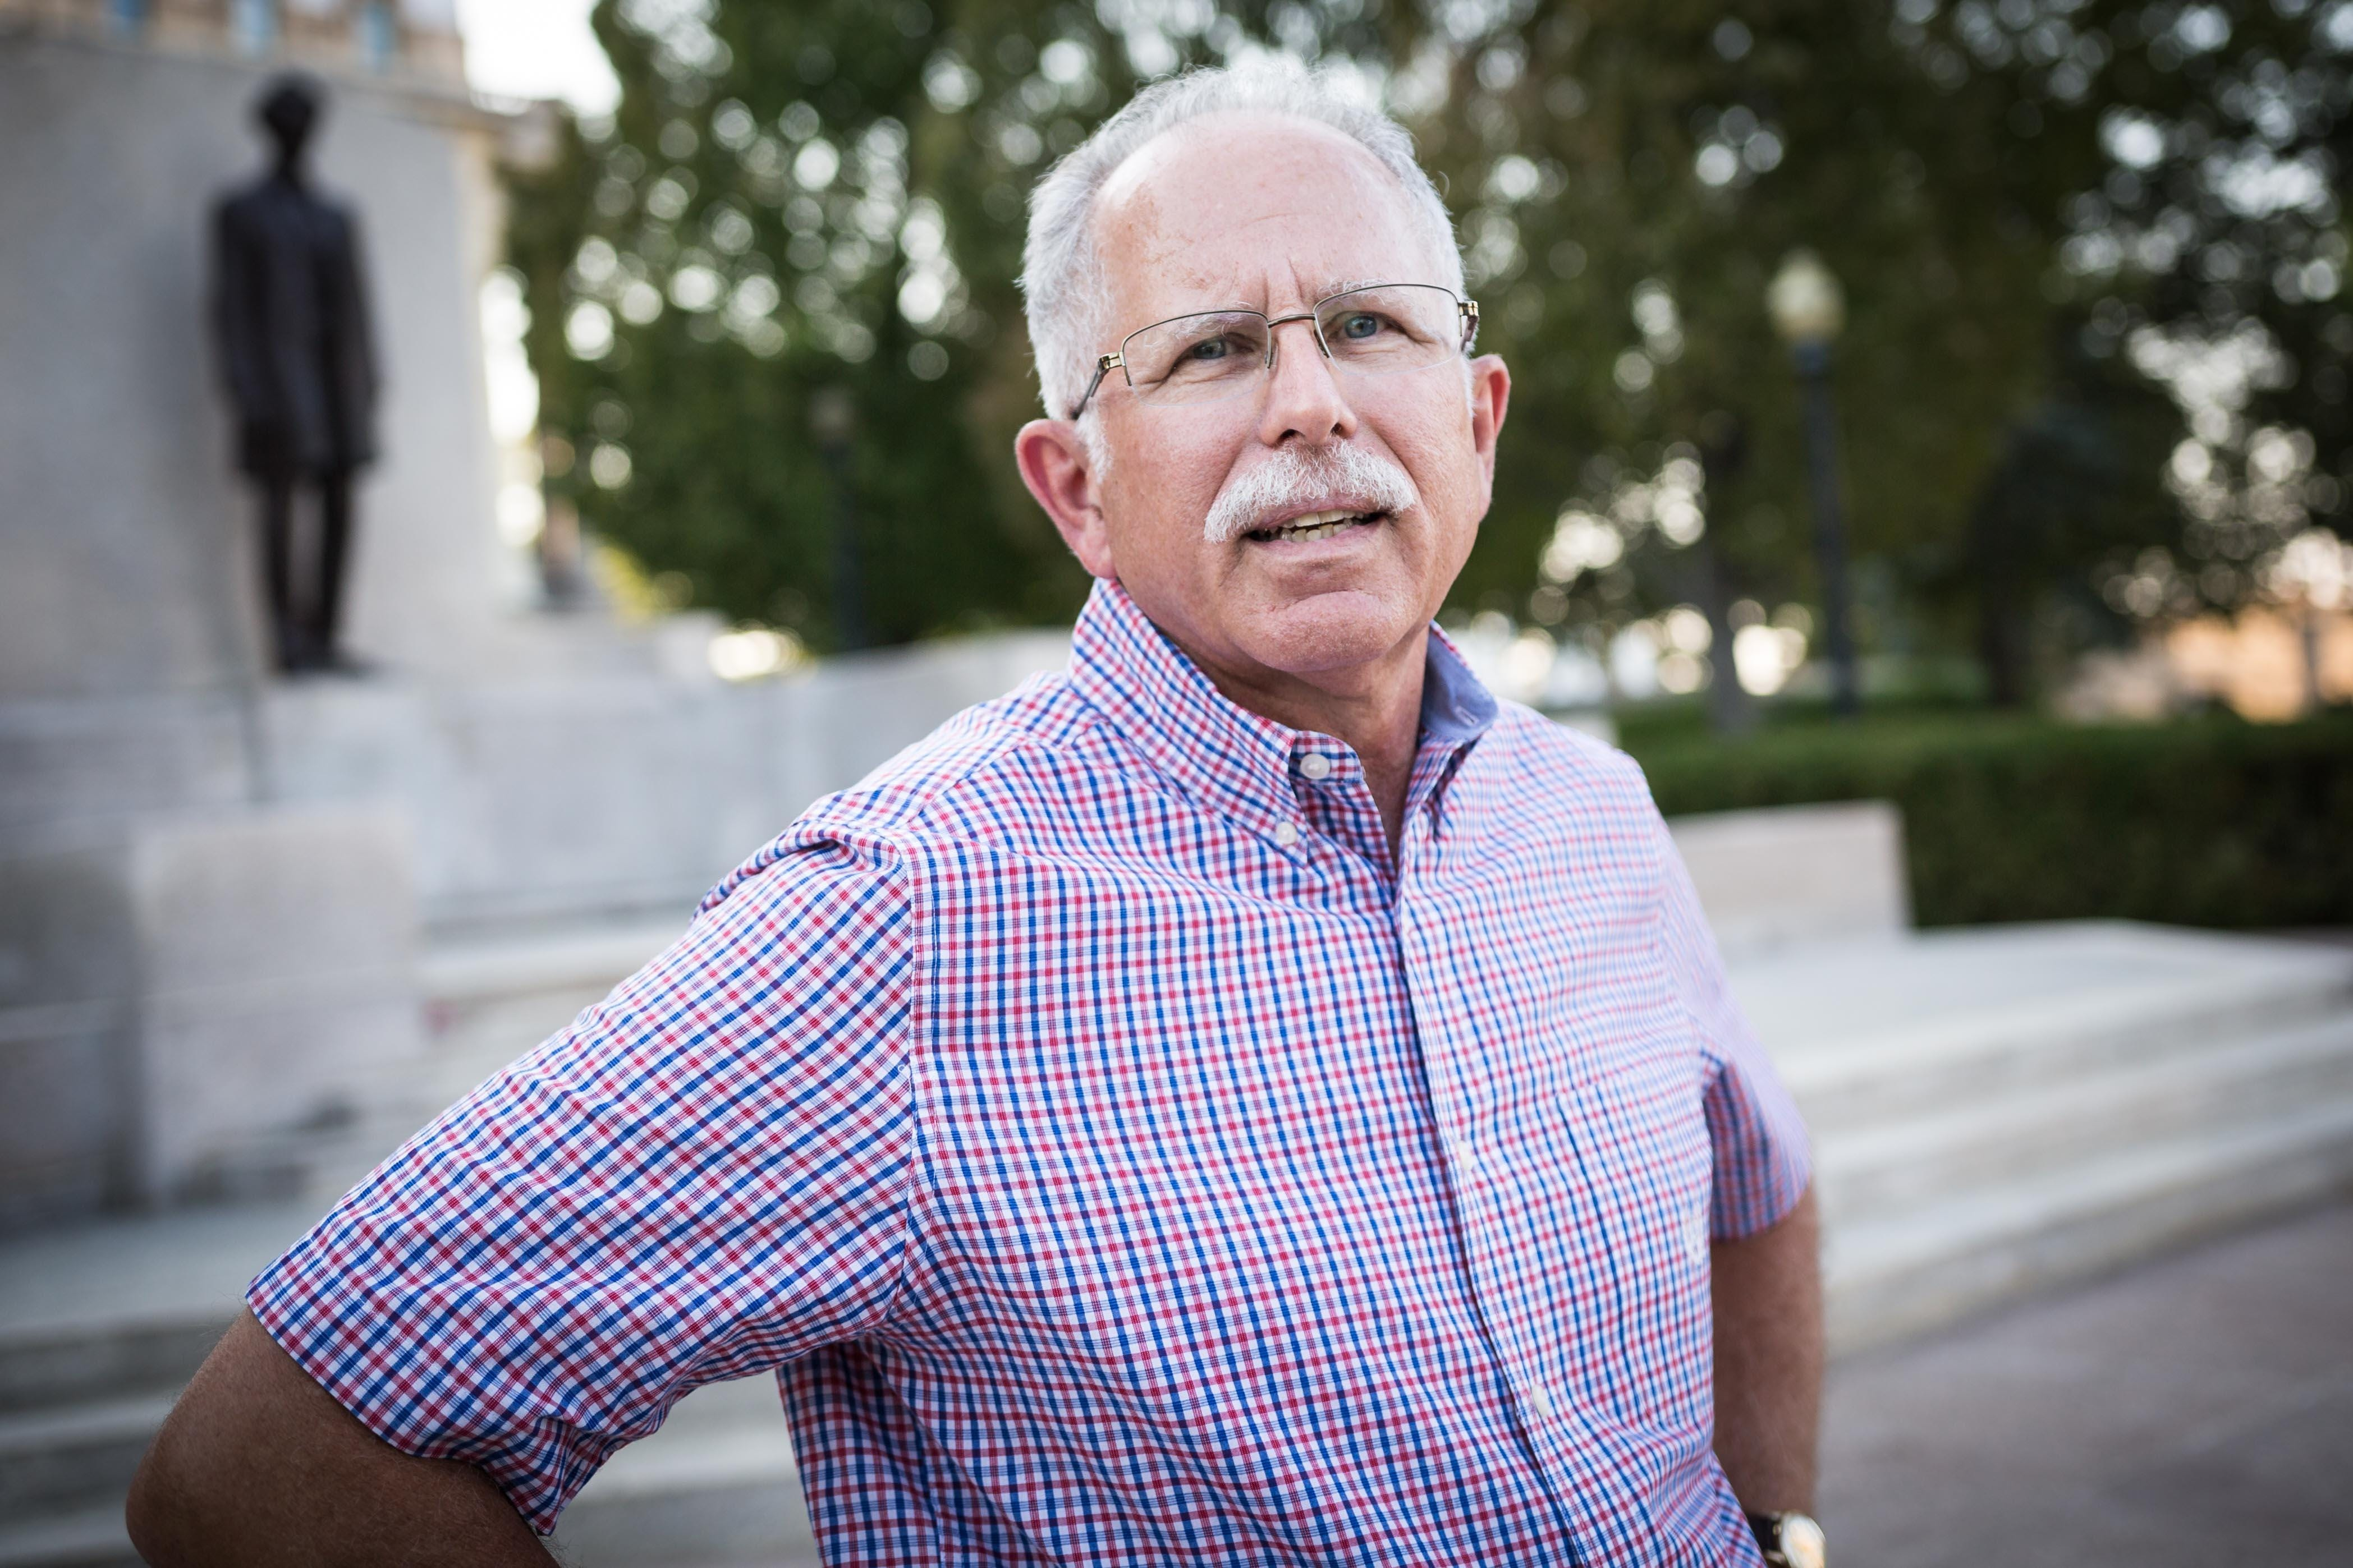 Jacques: Post 'Janus,' namesake still fights for worker rights